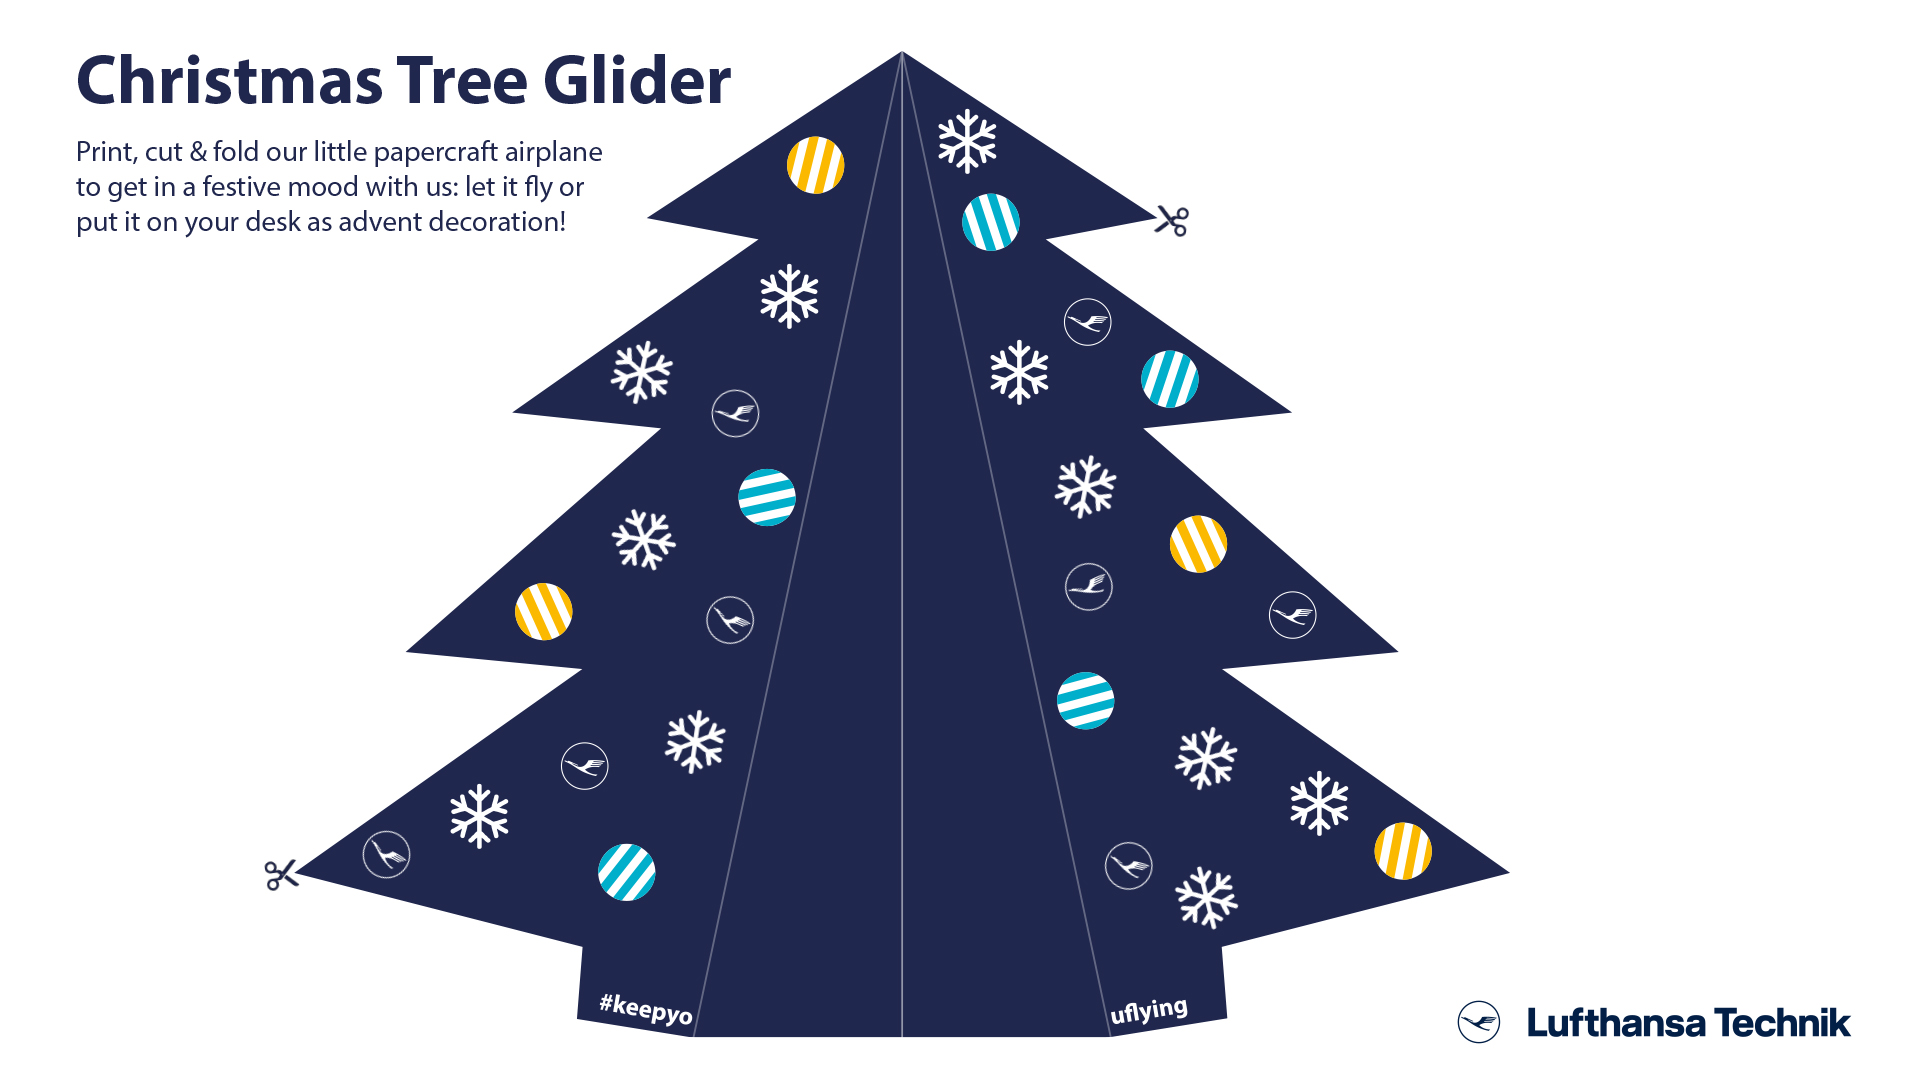 Build your Christmas Tree Glider with Lufthansa Technik